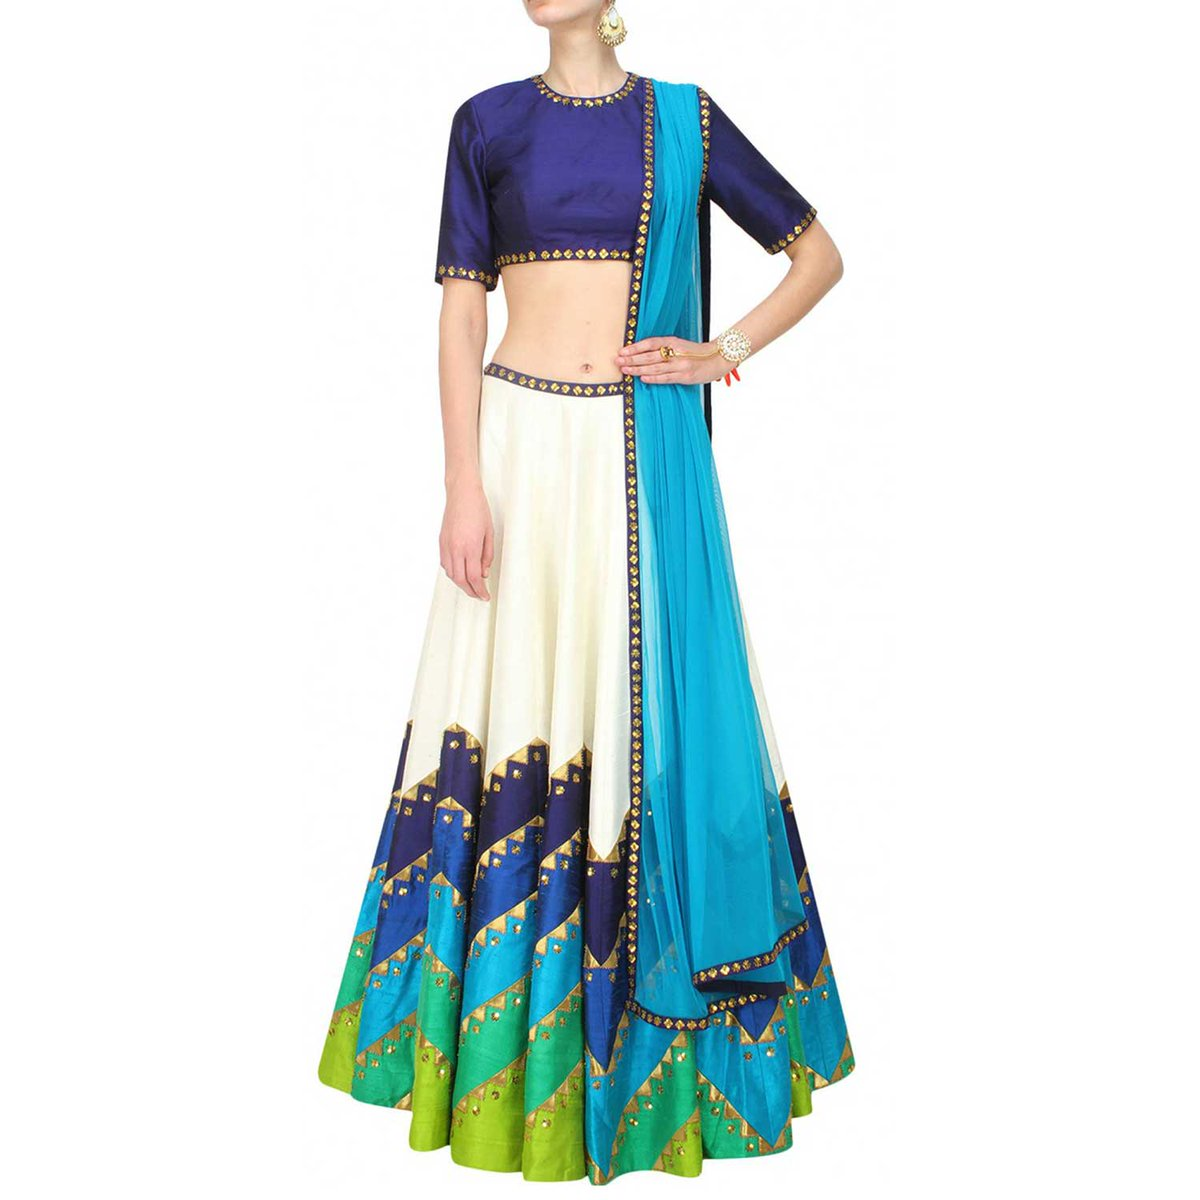 Online Shopping Sale For Women in India